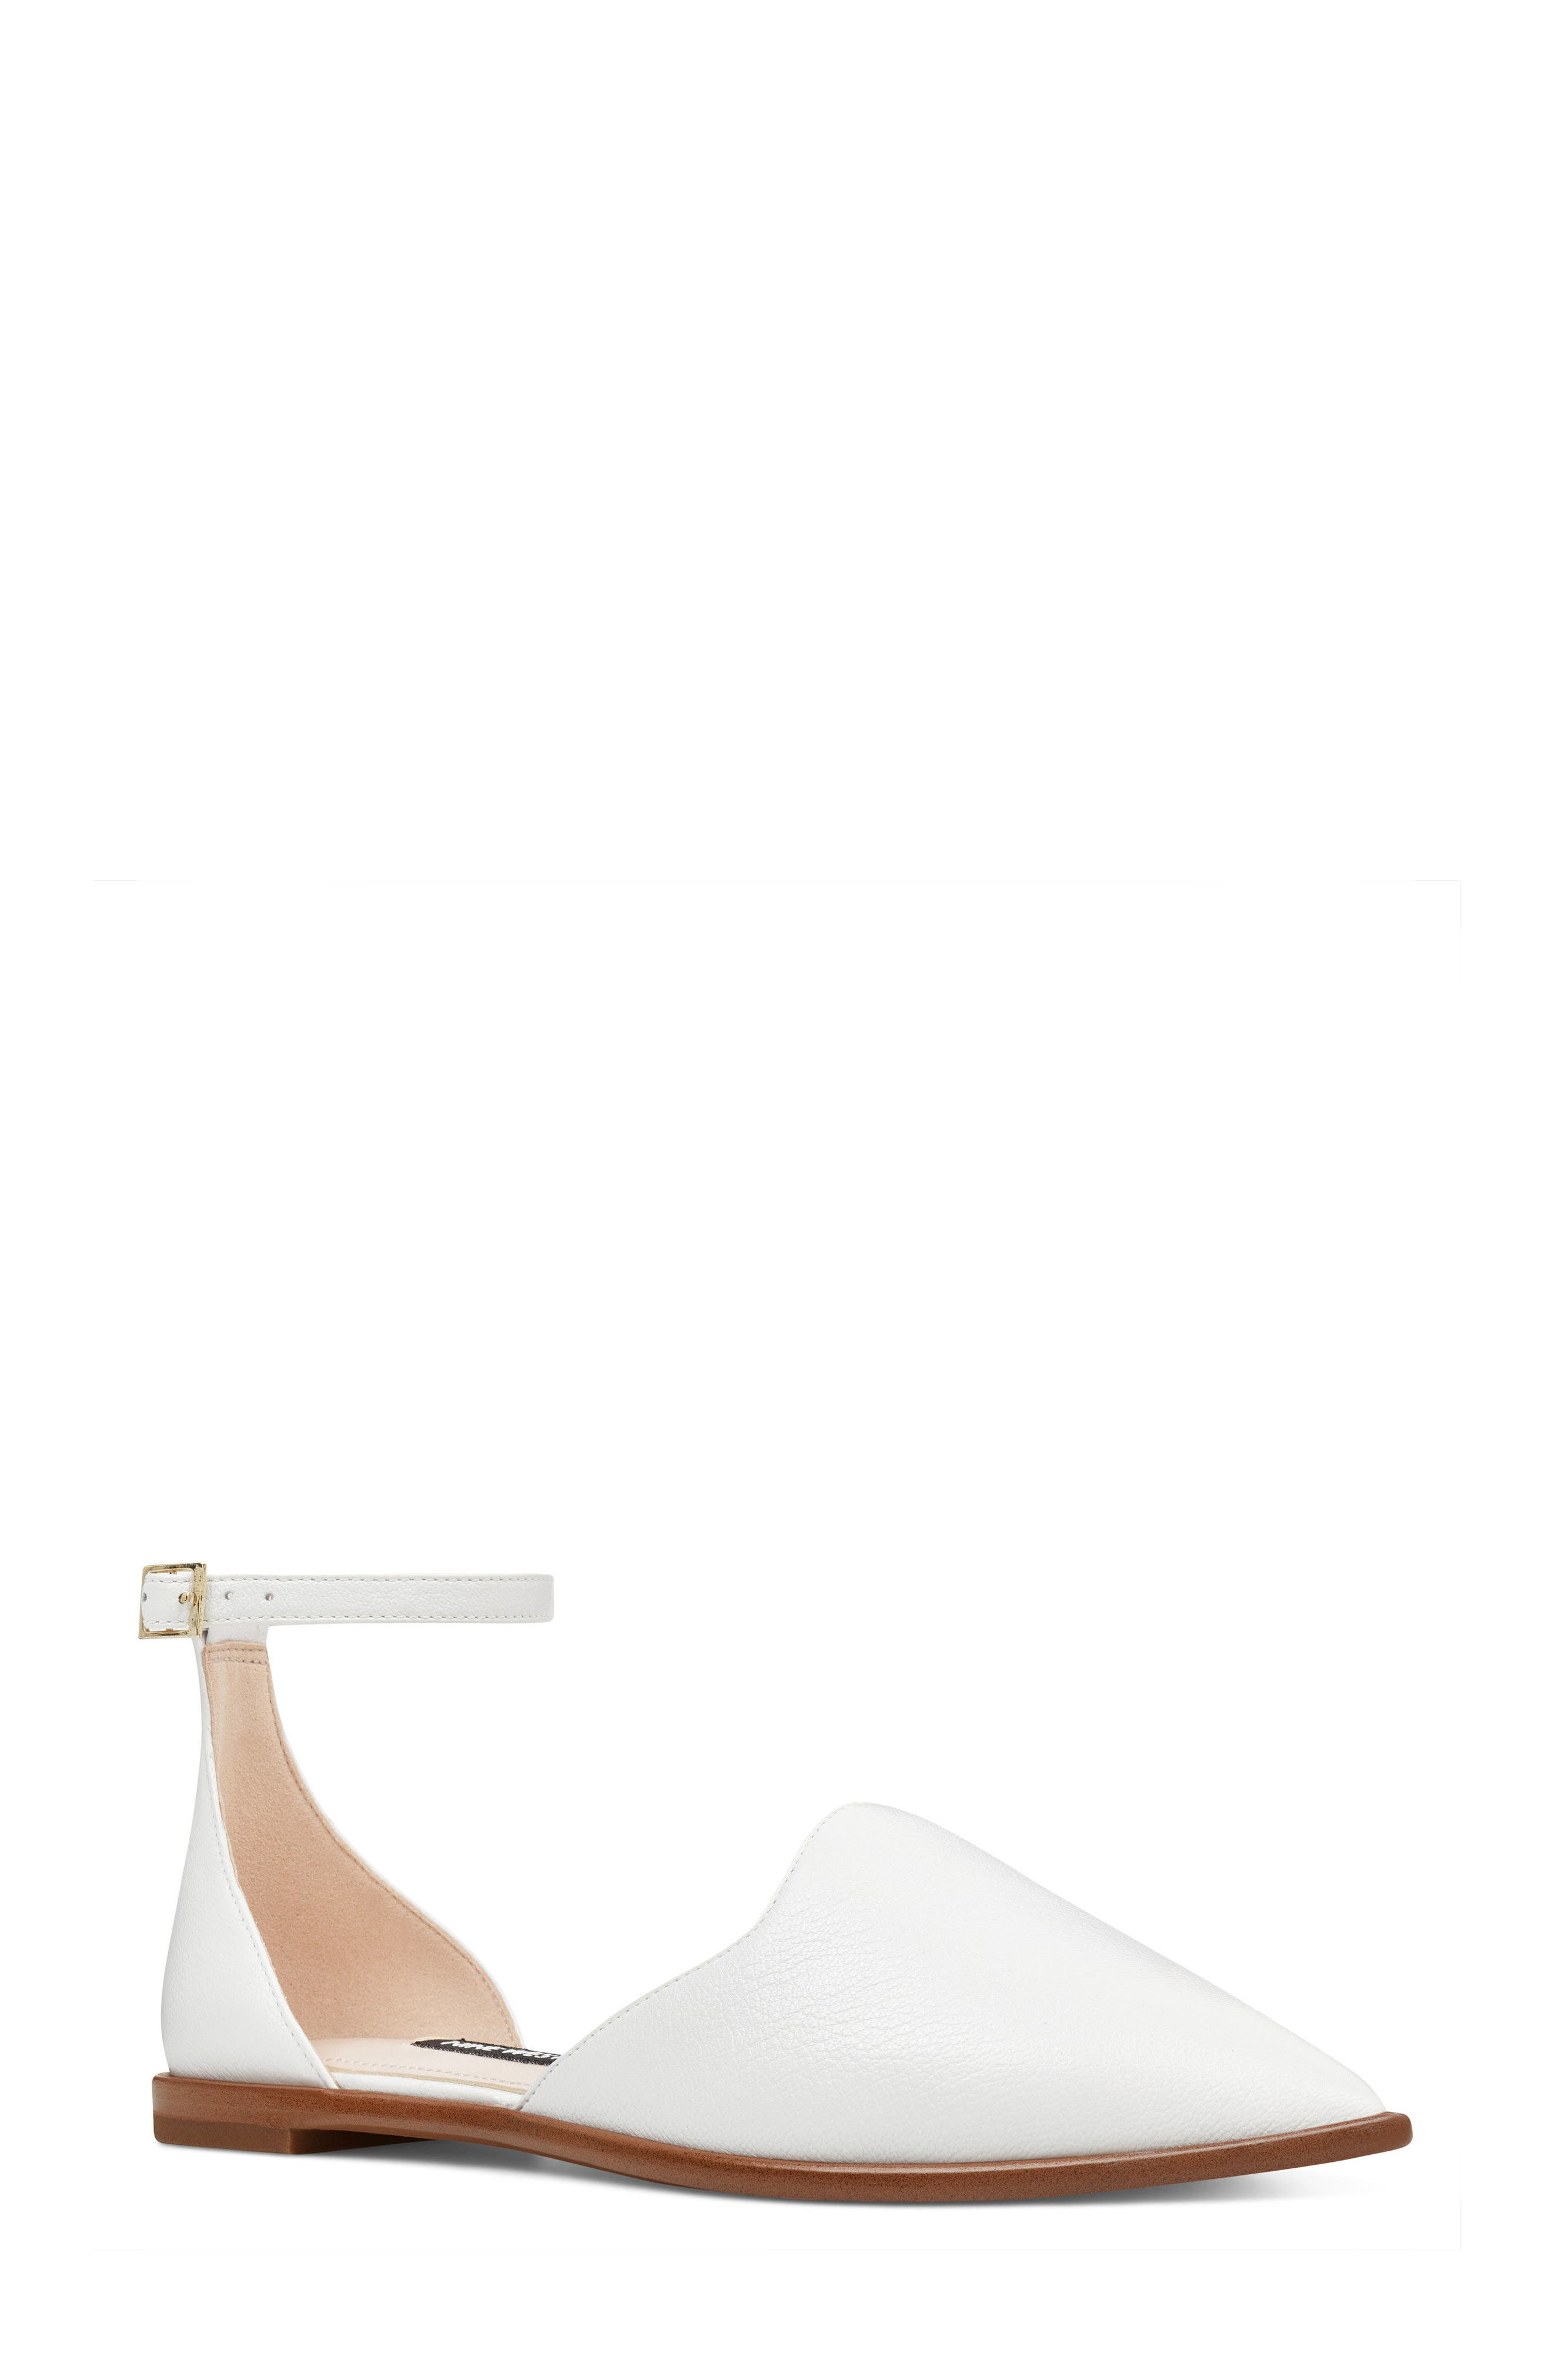 Oriona Ankle Strap Flat,                         Main,                         color, White Leather